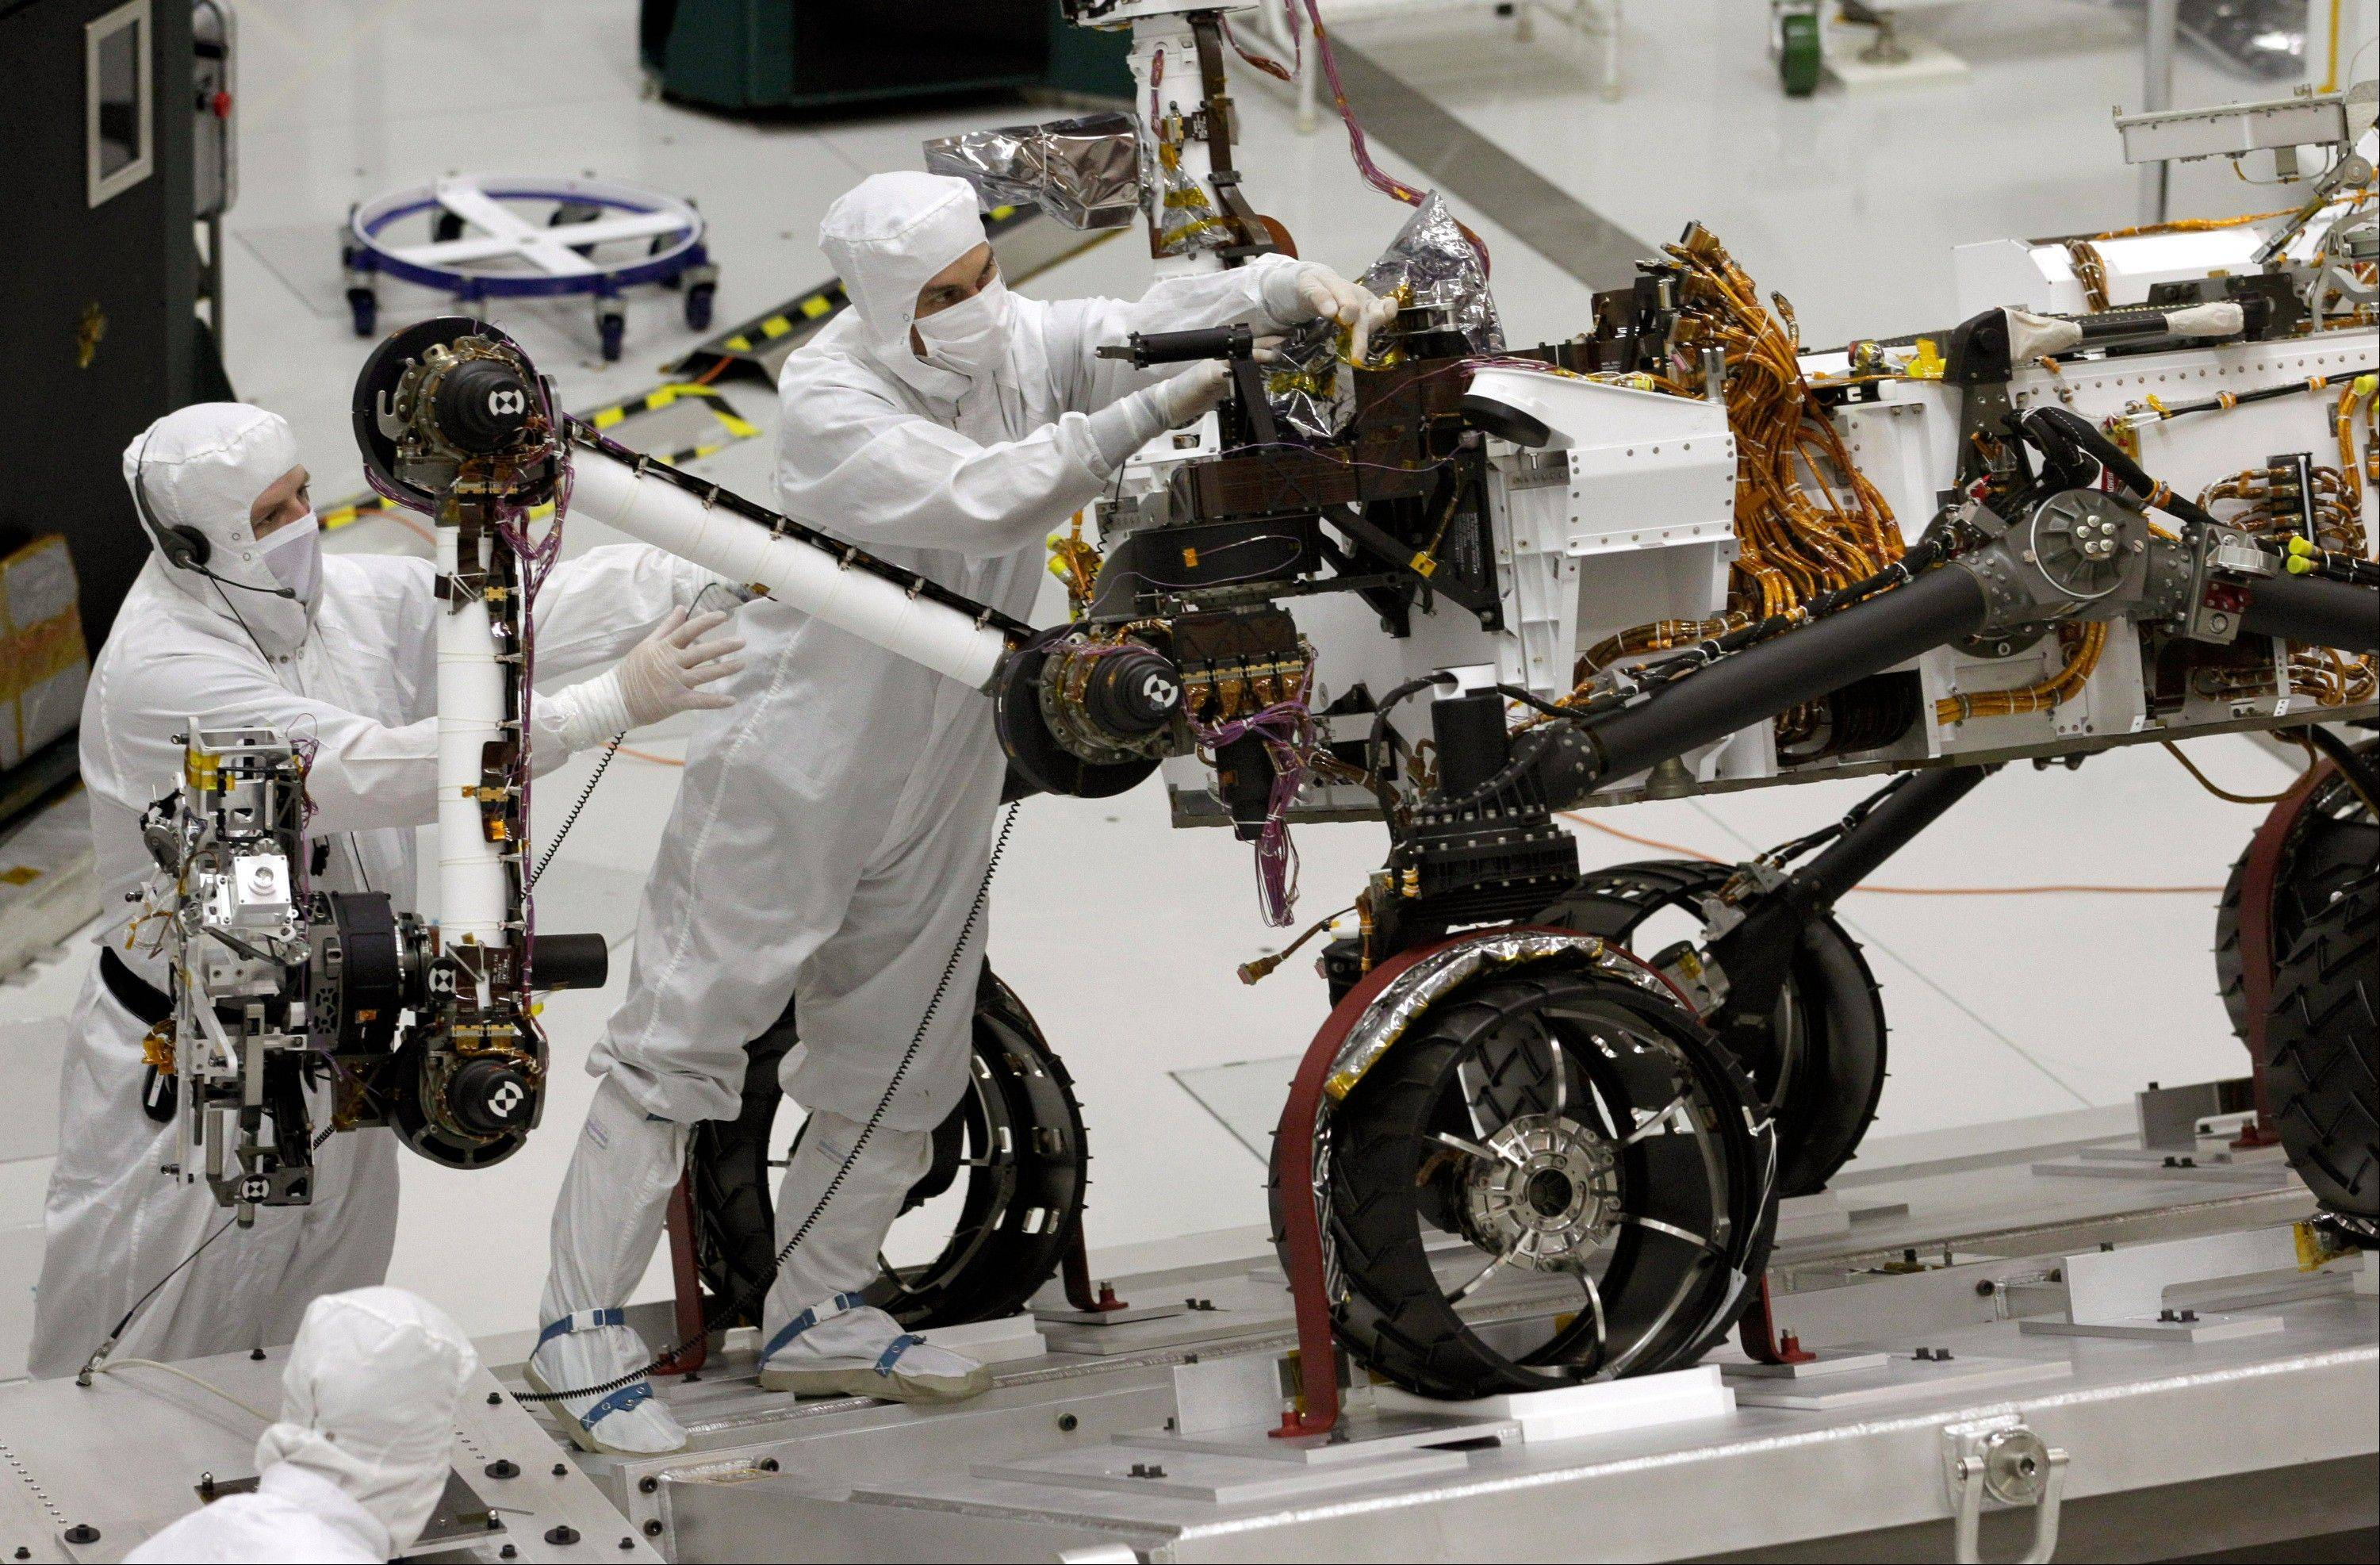 This Sept. 16, 2010 file photo shows engineers working on the Mars rover Curiosity at NASA's Jet Propulsion Laboratory in Pasadena, Calif. After traveling 8 1/2 months and 352 million miles, Curiosity will attempt a landing on Mars the night of Aug. 5, 2012.